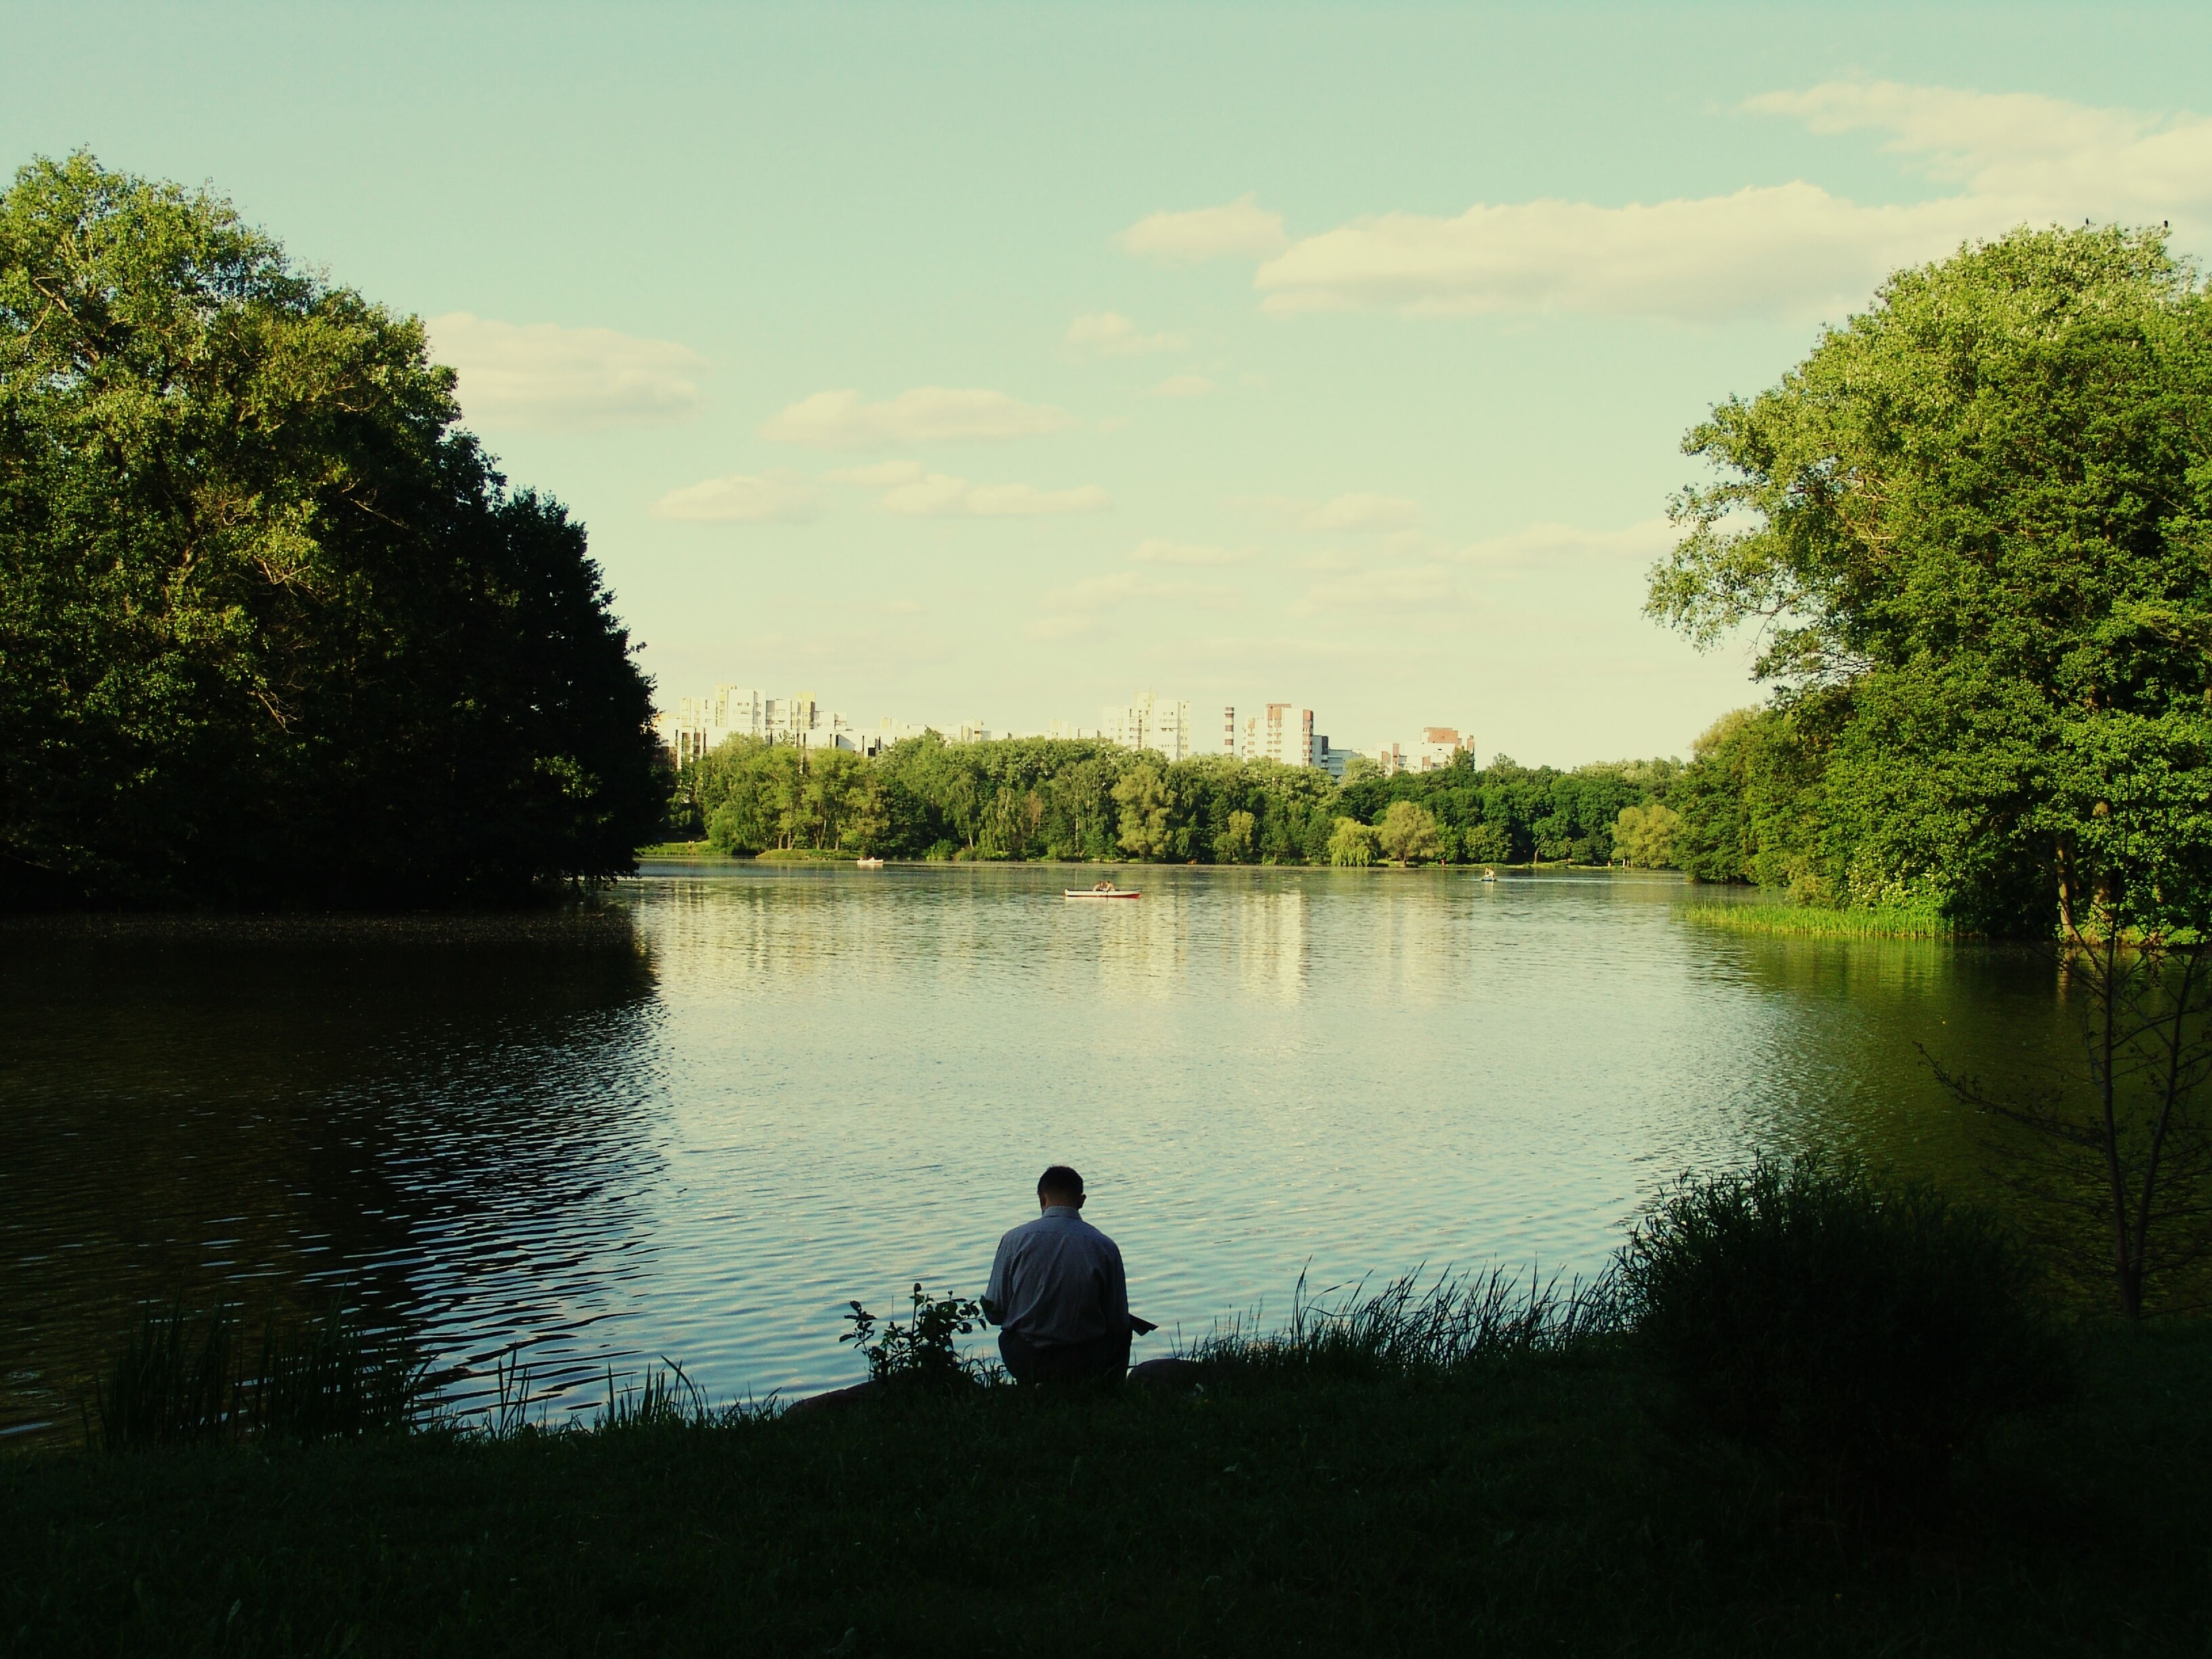 tree, water, lake, sky, tranquility, tranquil scene, rear view, nature, scenics, beauty in nature, leisure activity, reflection, silhouette, river, men, lifestyles, standing, lakeshore